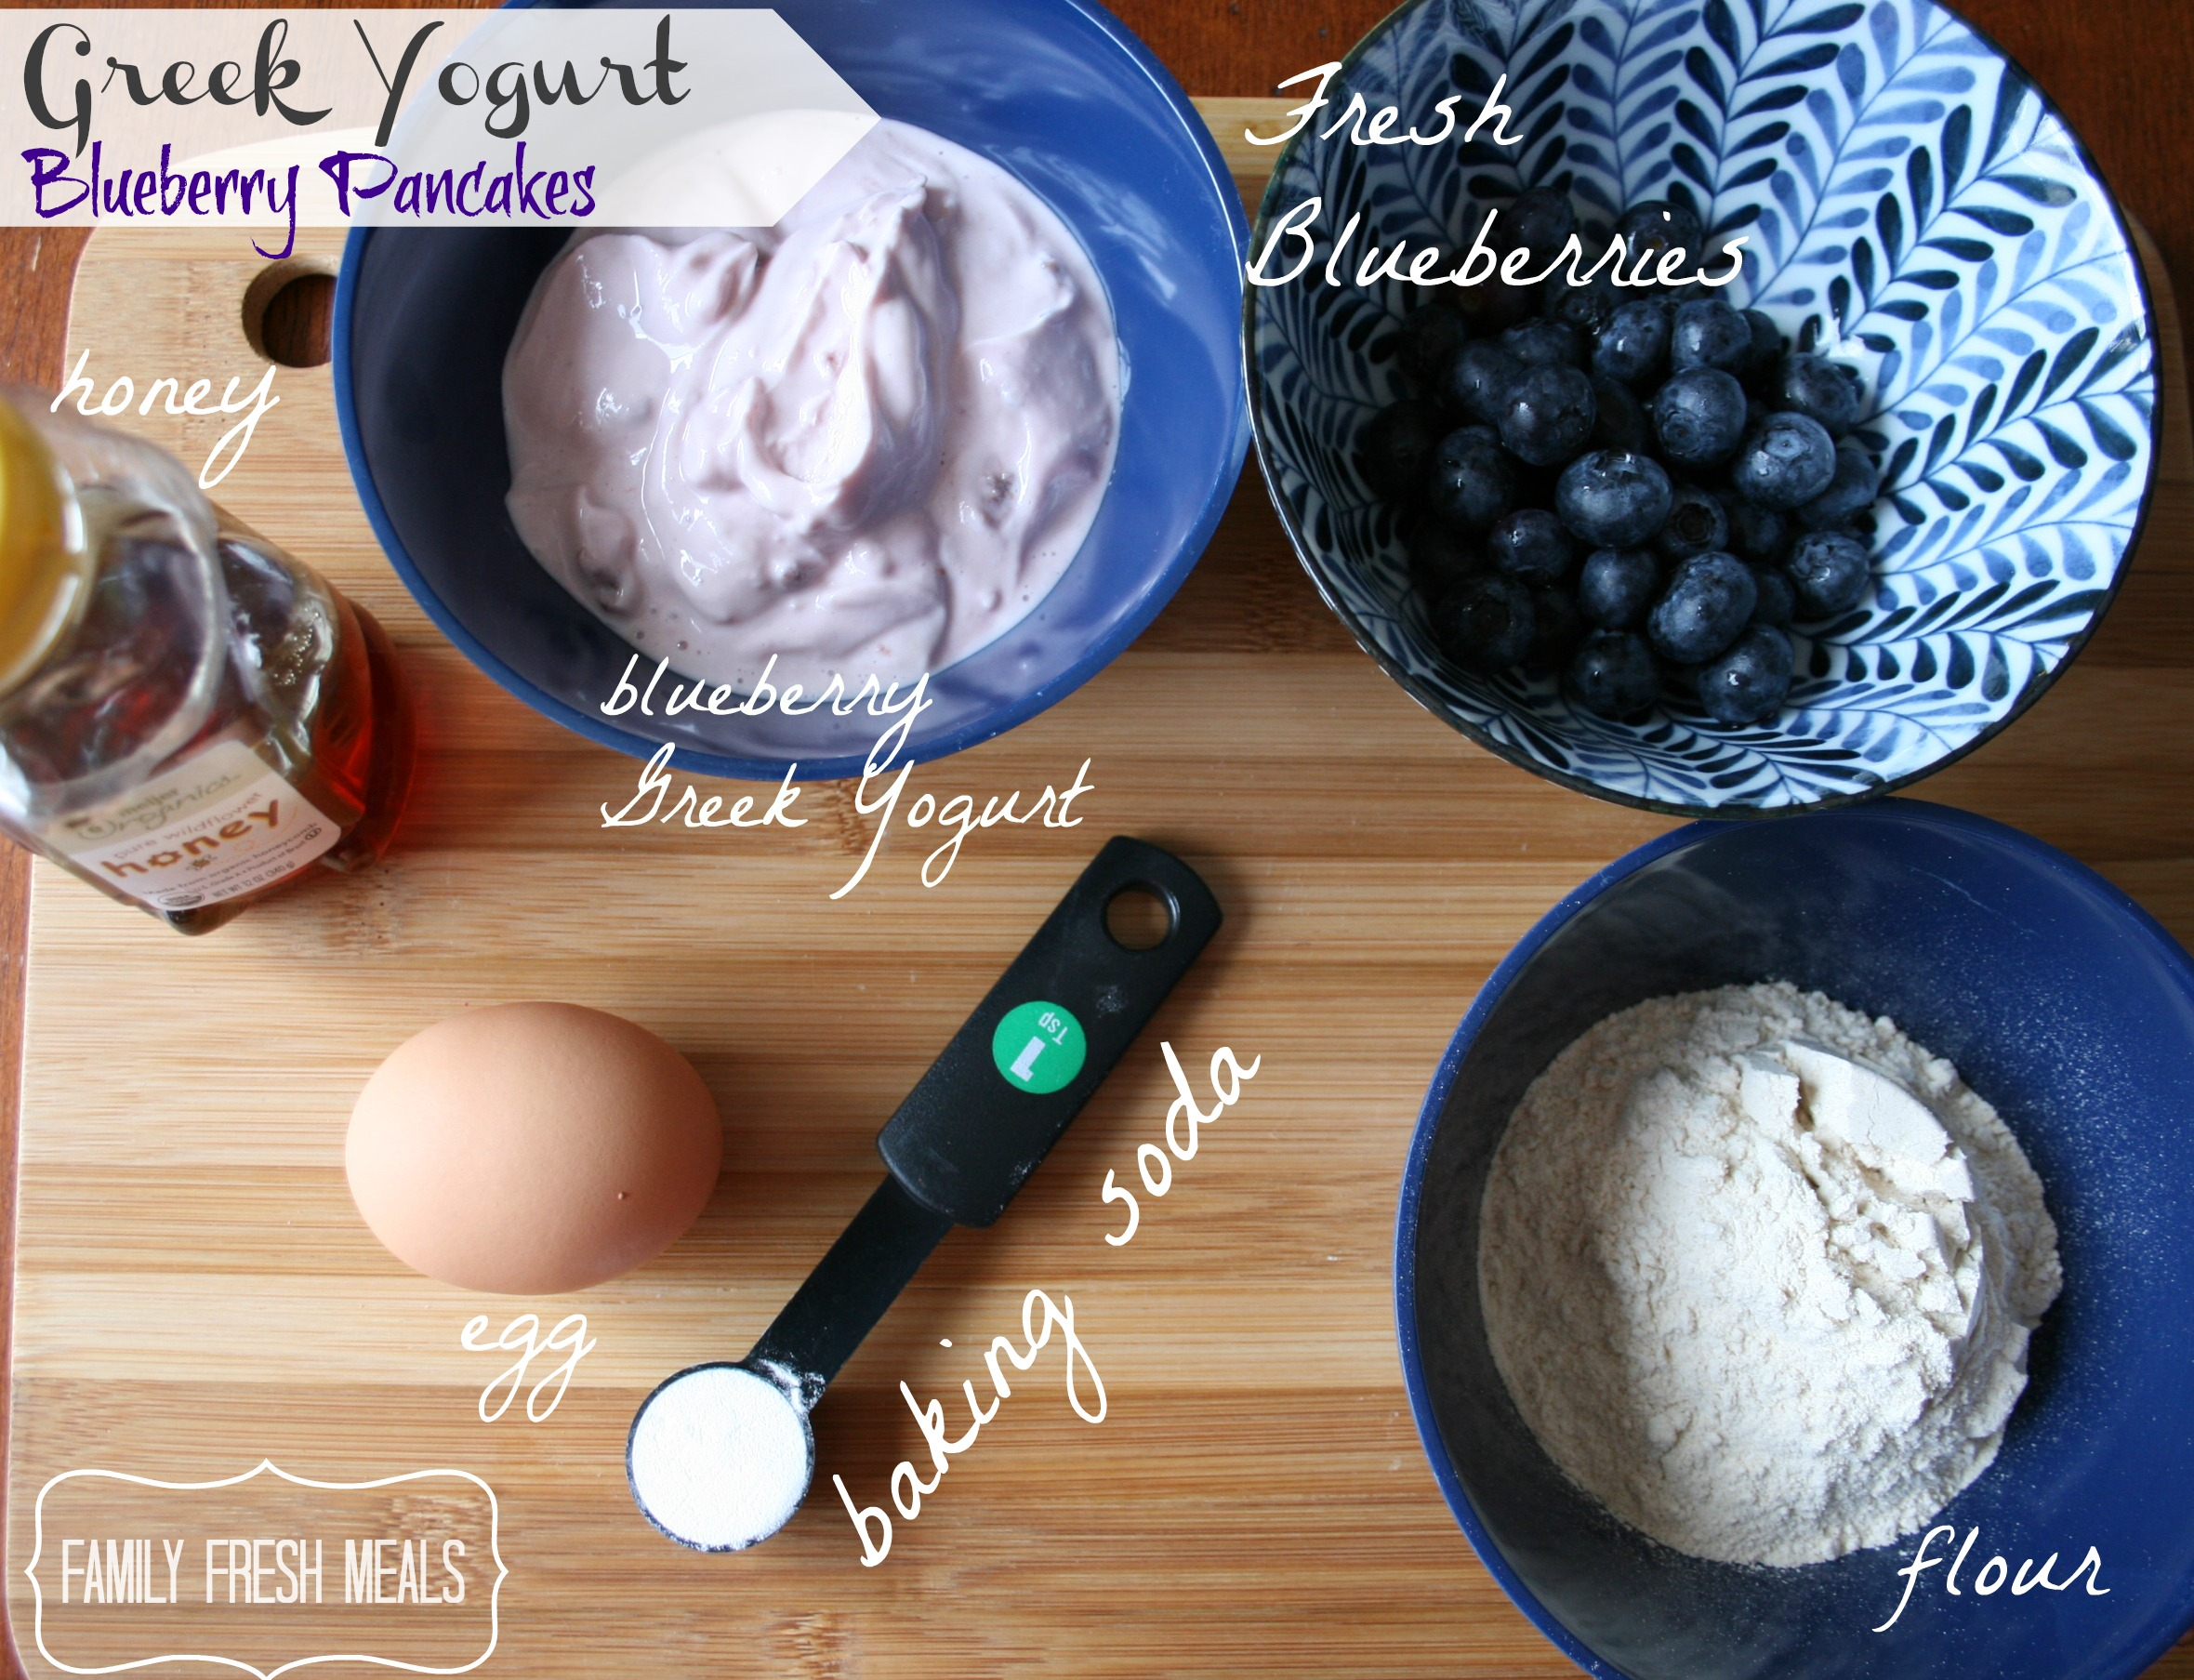 Ingredients for Greek Yogurt Pancakes